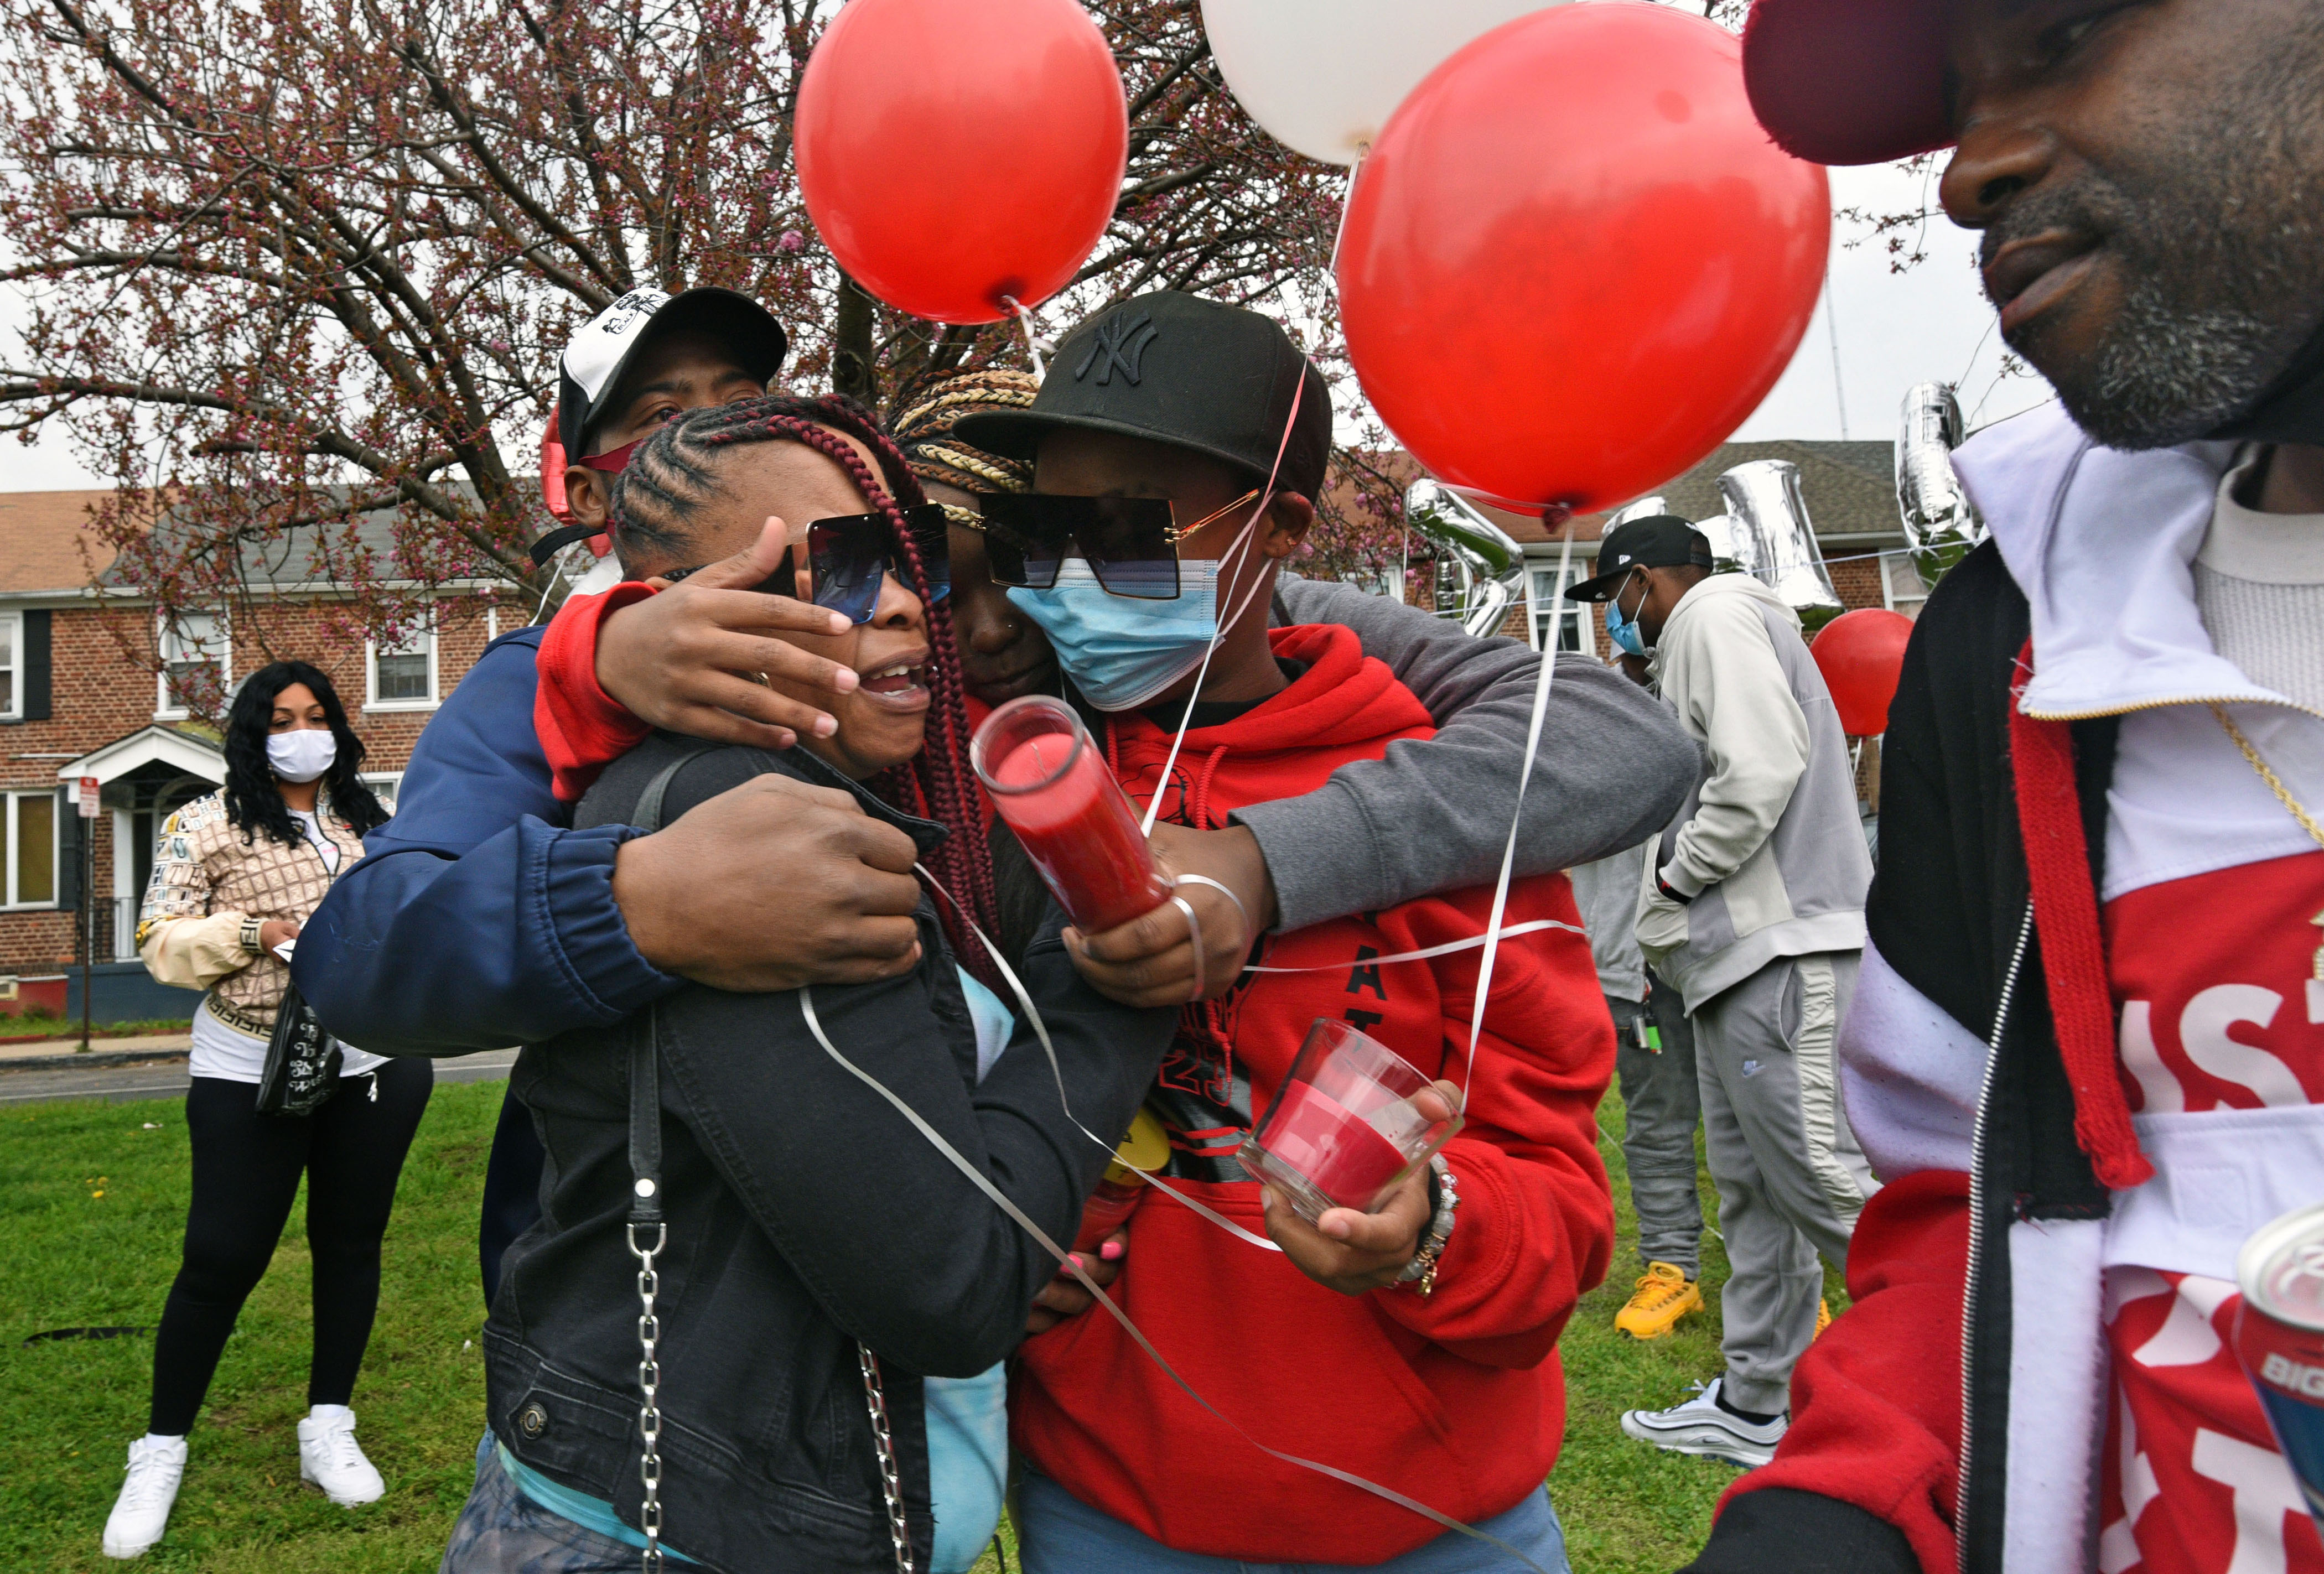 Tomeka Holmes (left) is embraced by family members, including her 15-year-old daughter Siani Custis